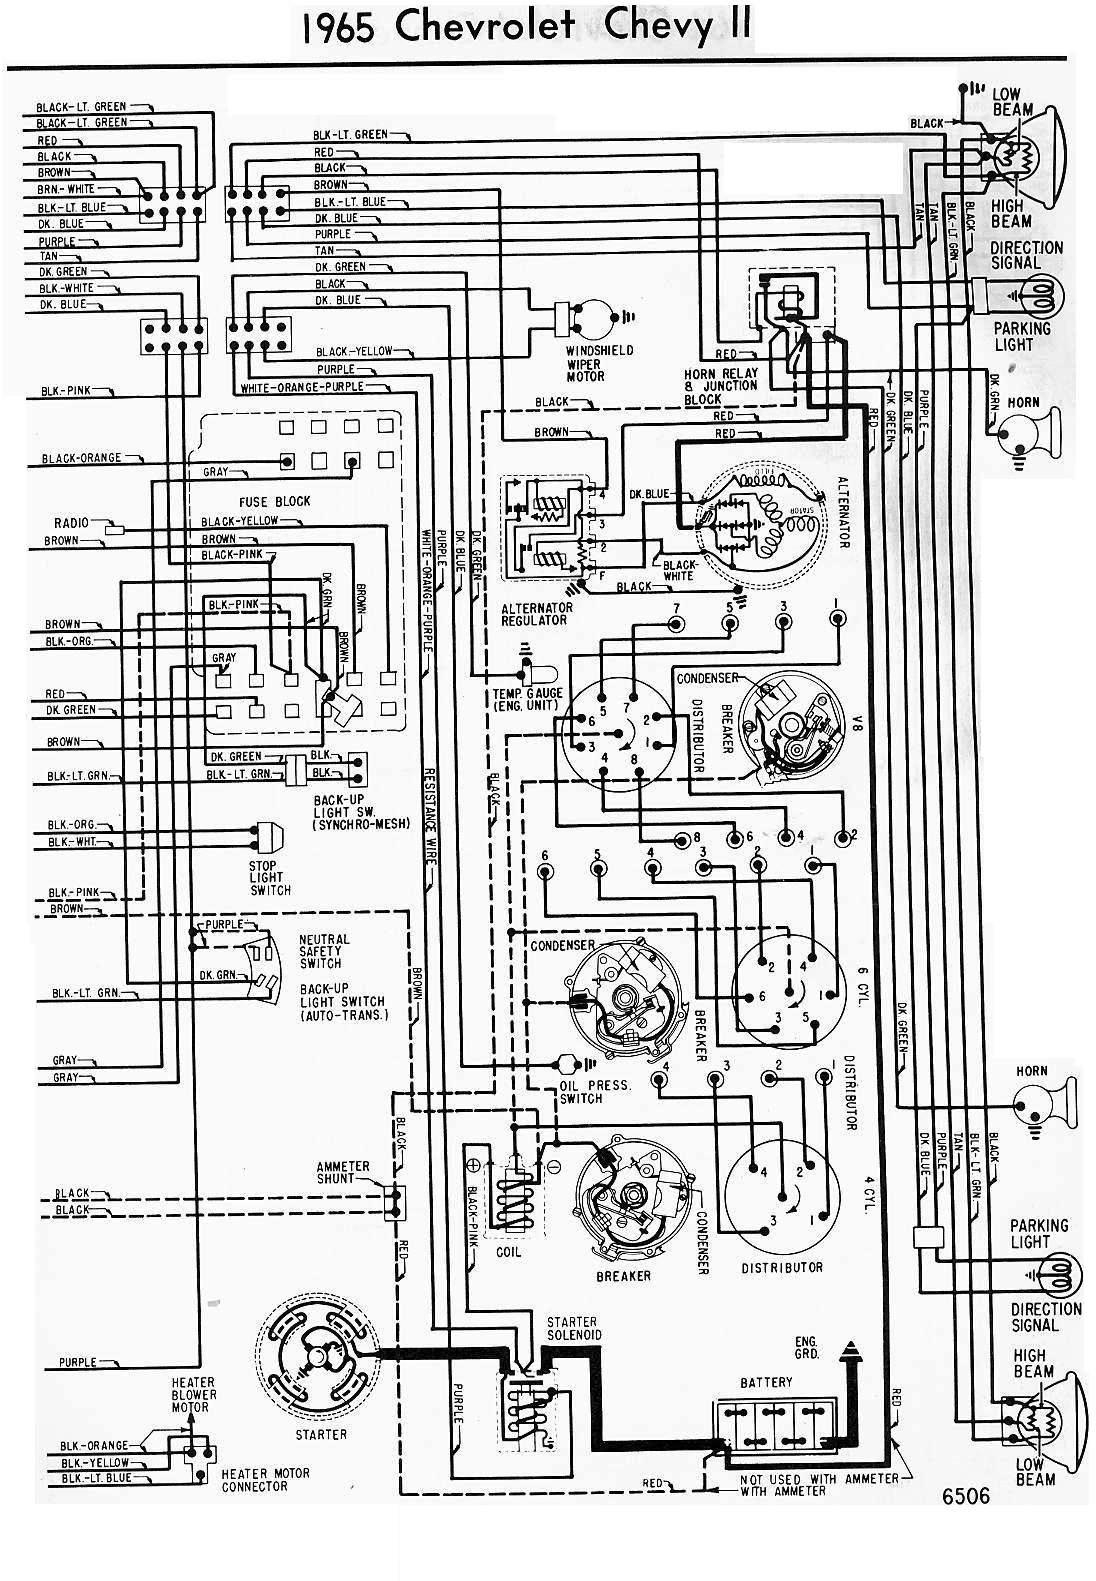 medium resolution of 1966 impala wiring schematic wiring library1965 chevrolet chevy ii wiring diagram